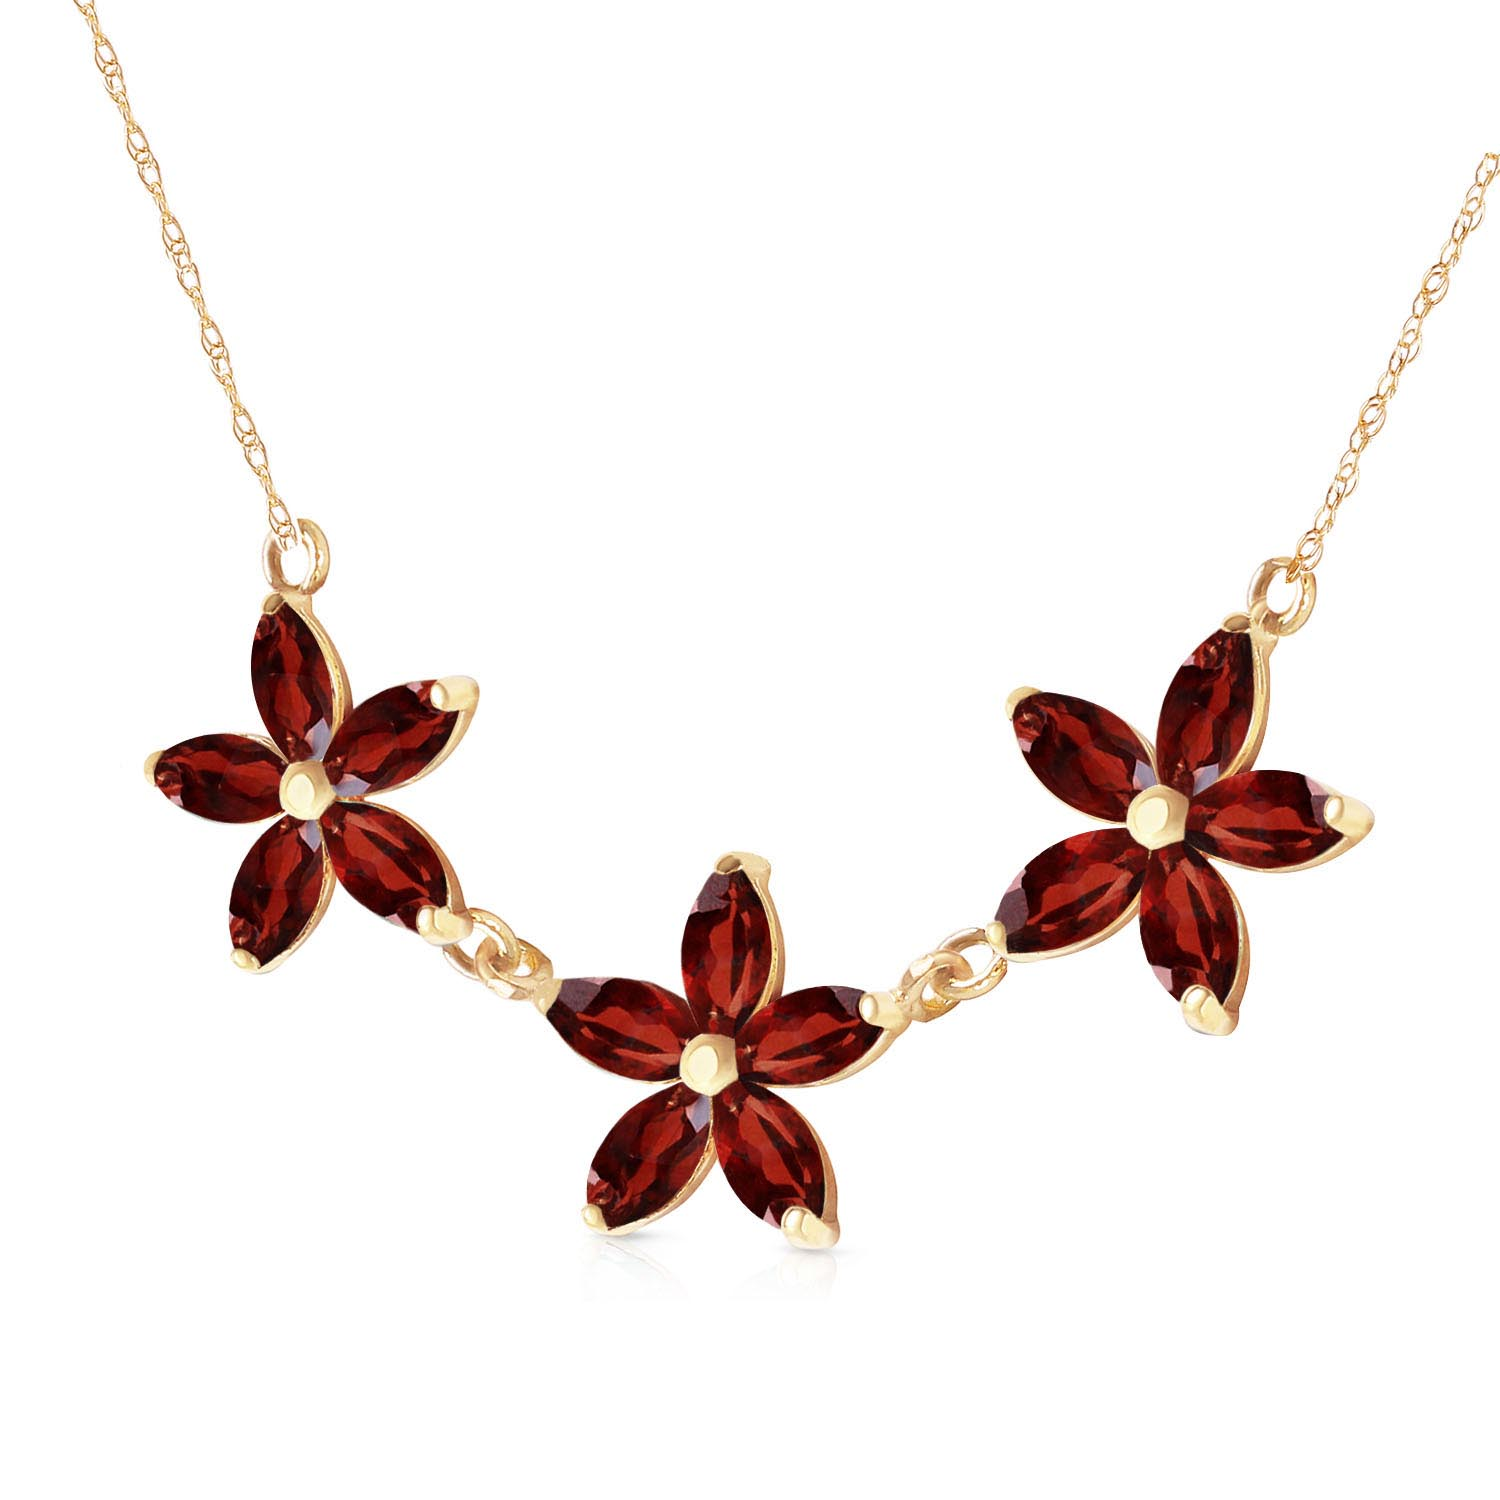 Marquise Cut Garnet Pendant Necklace 4.2ct in 9ct Gold